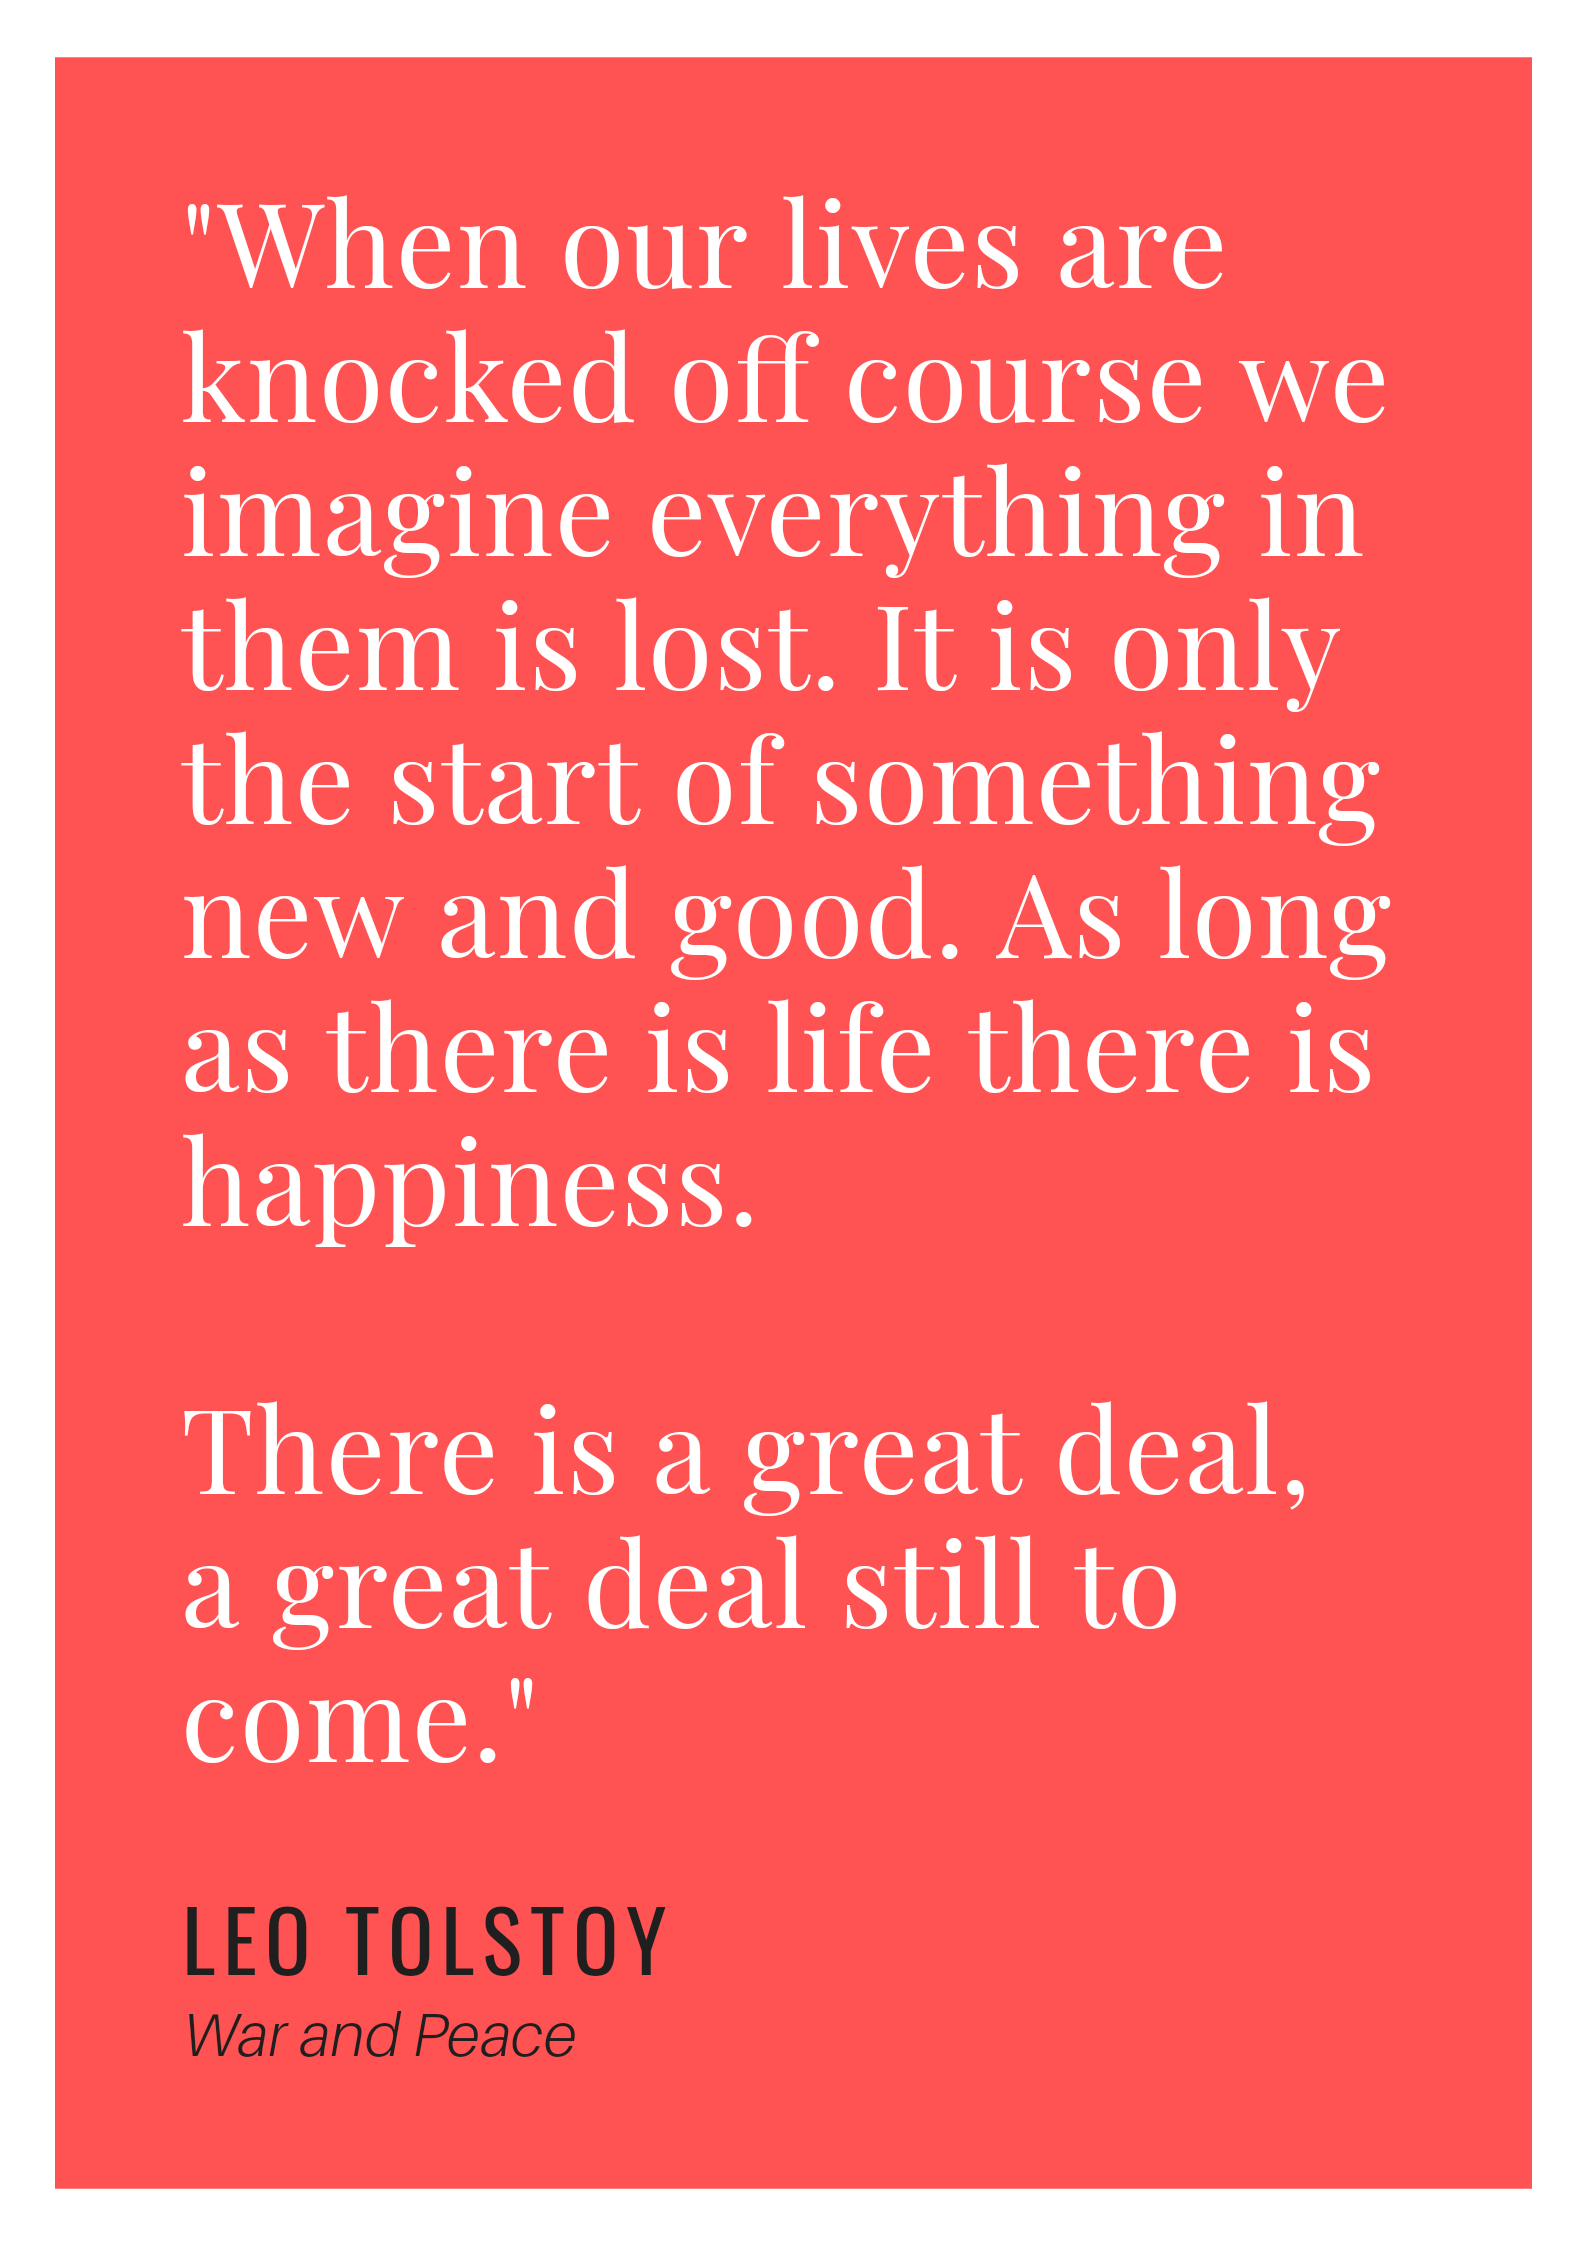 [image] There is a great deal, a great deal still to come.